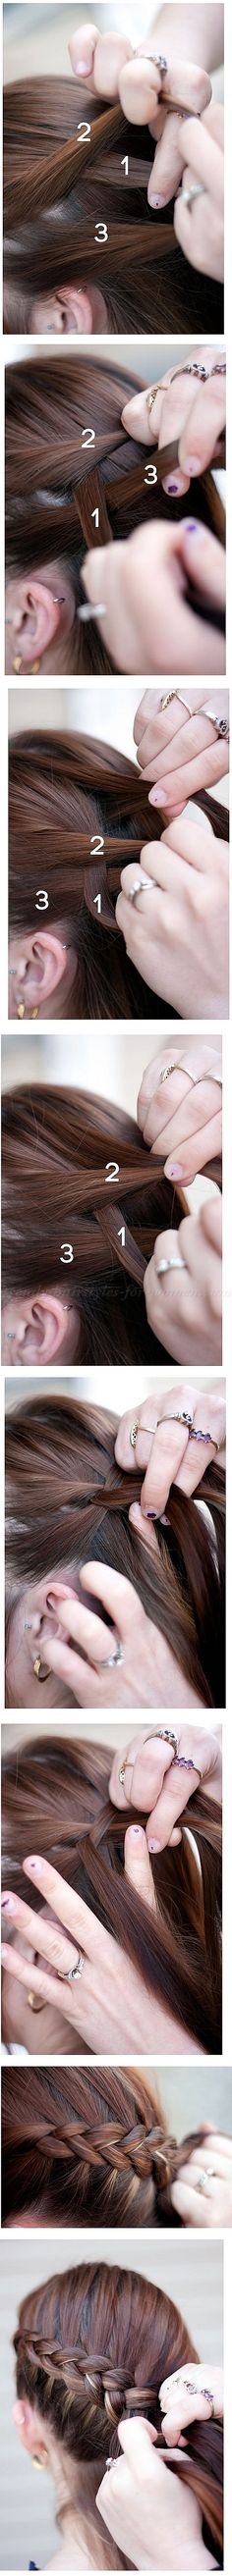 hairstyle tutorials, hairstyles step by step - Katniss Everdeen hairstyle from the Hunger Games|trendy-hairstyles-for-women.com